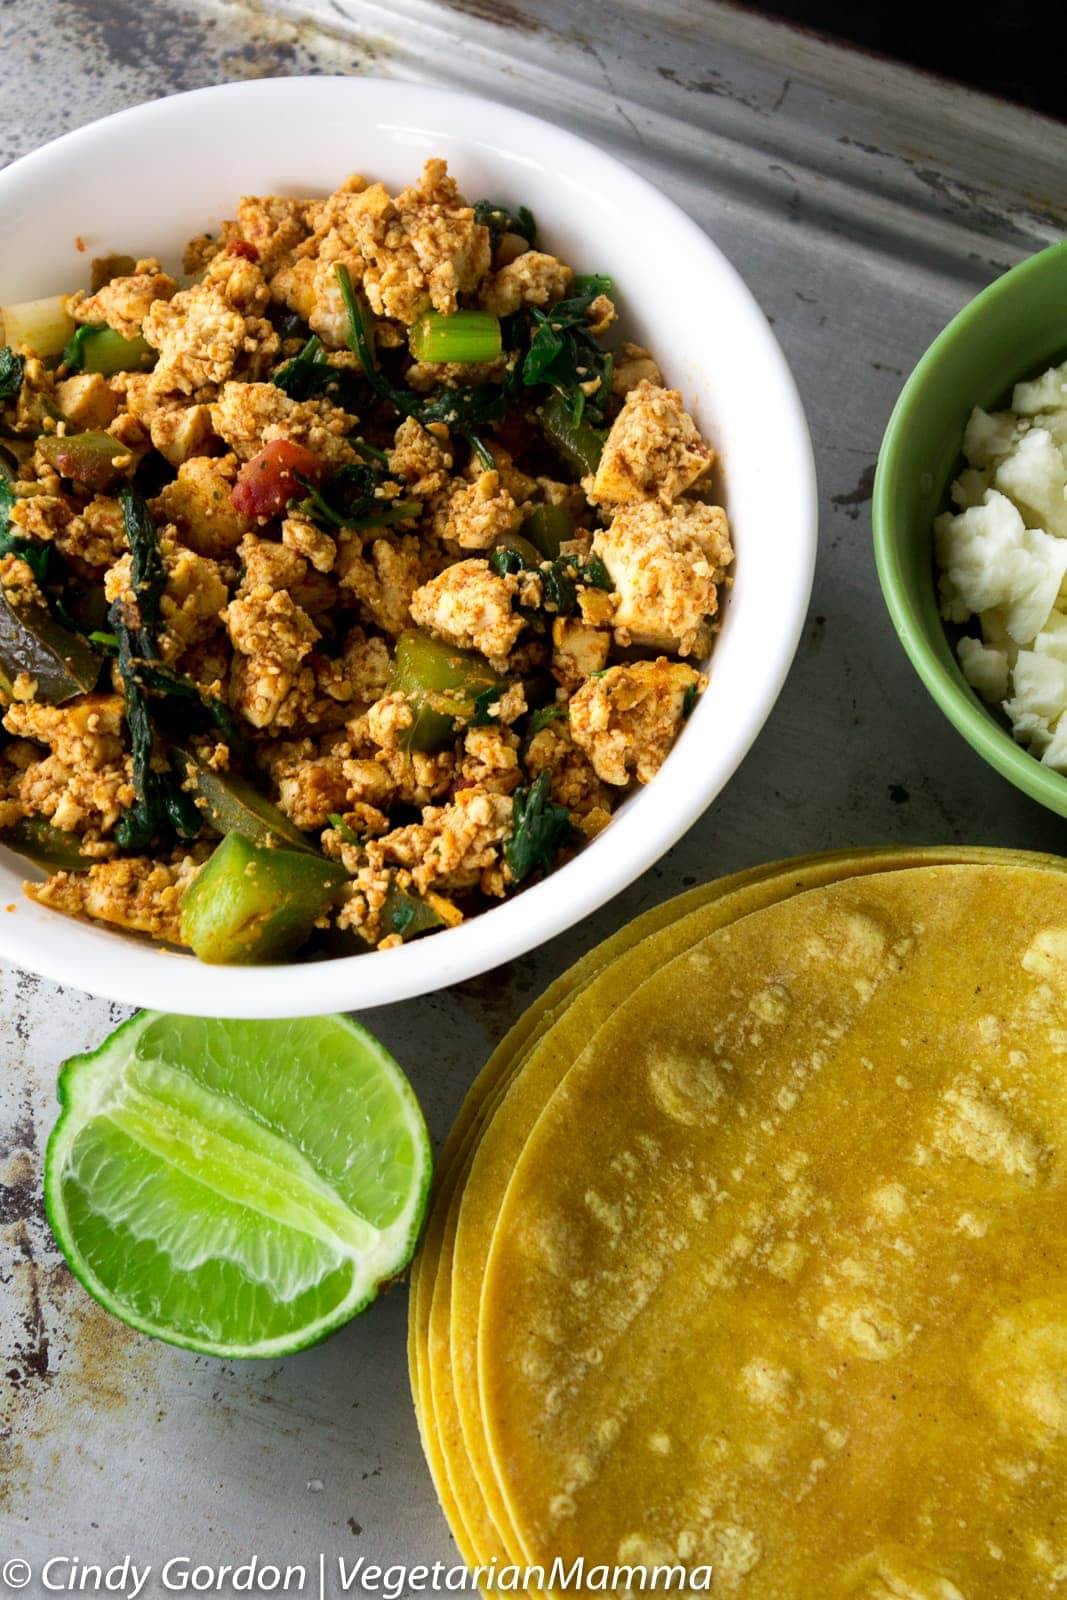 A white bowl with brown tofu crumbles scrambled with vegetables and herbs